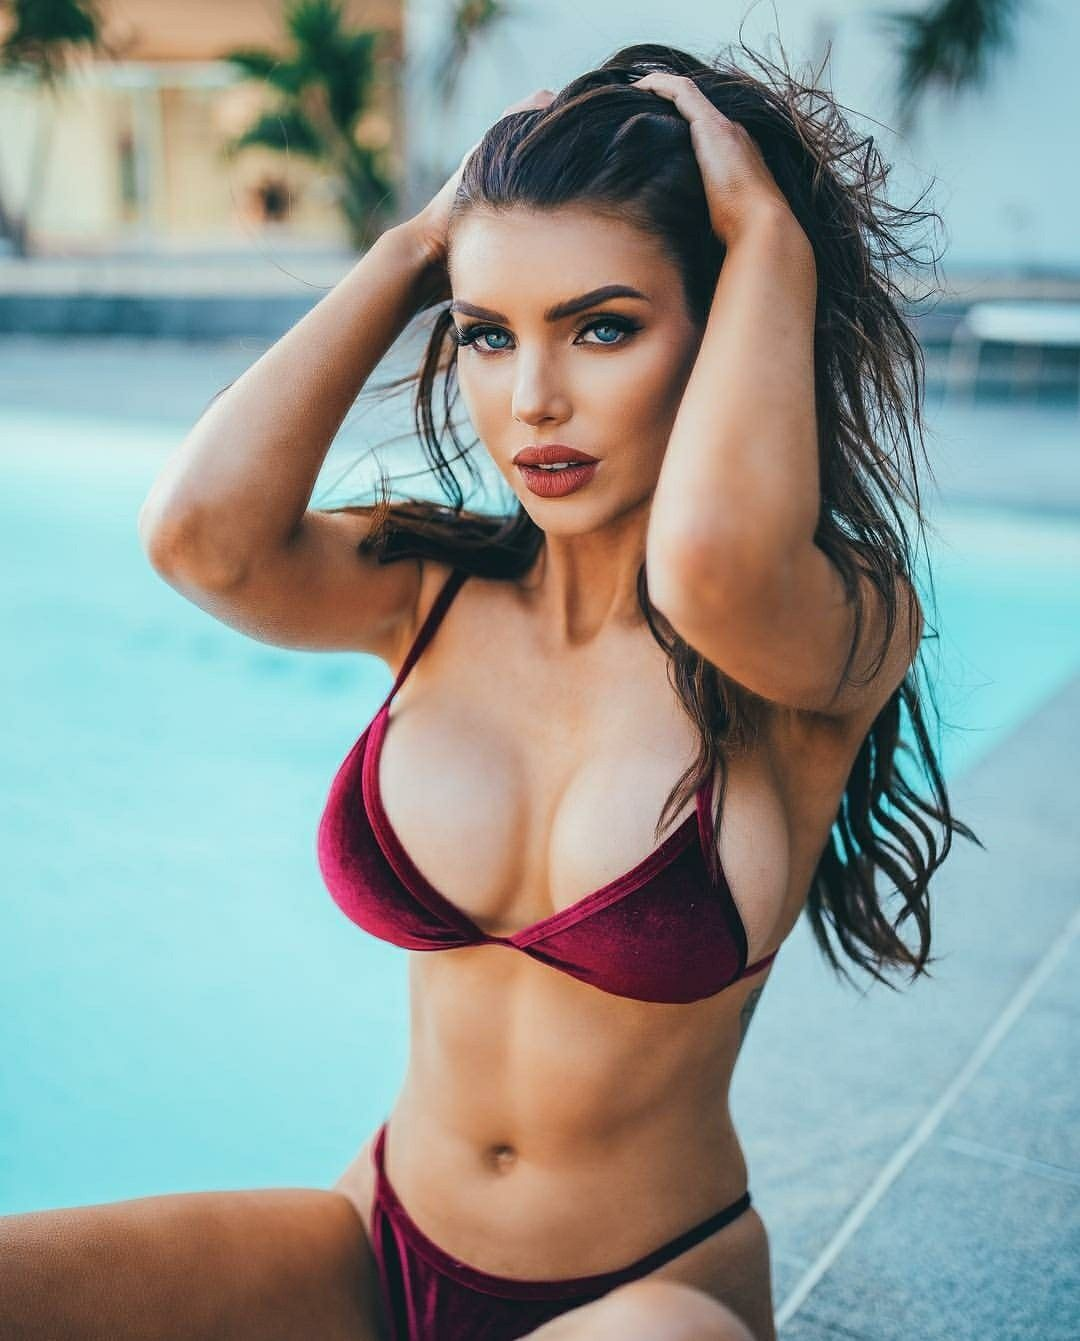 Young Nicole Thorne nudes (76 images), Instagram